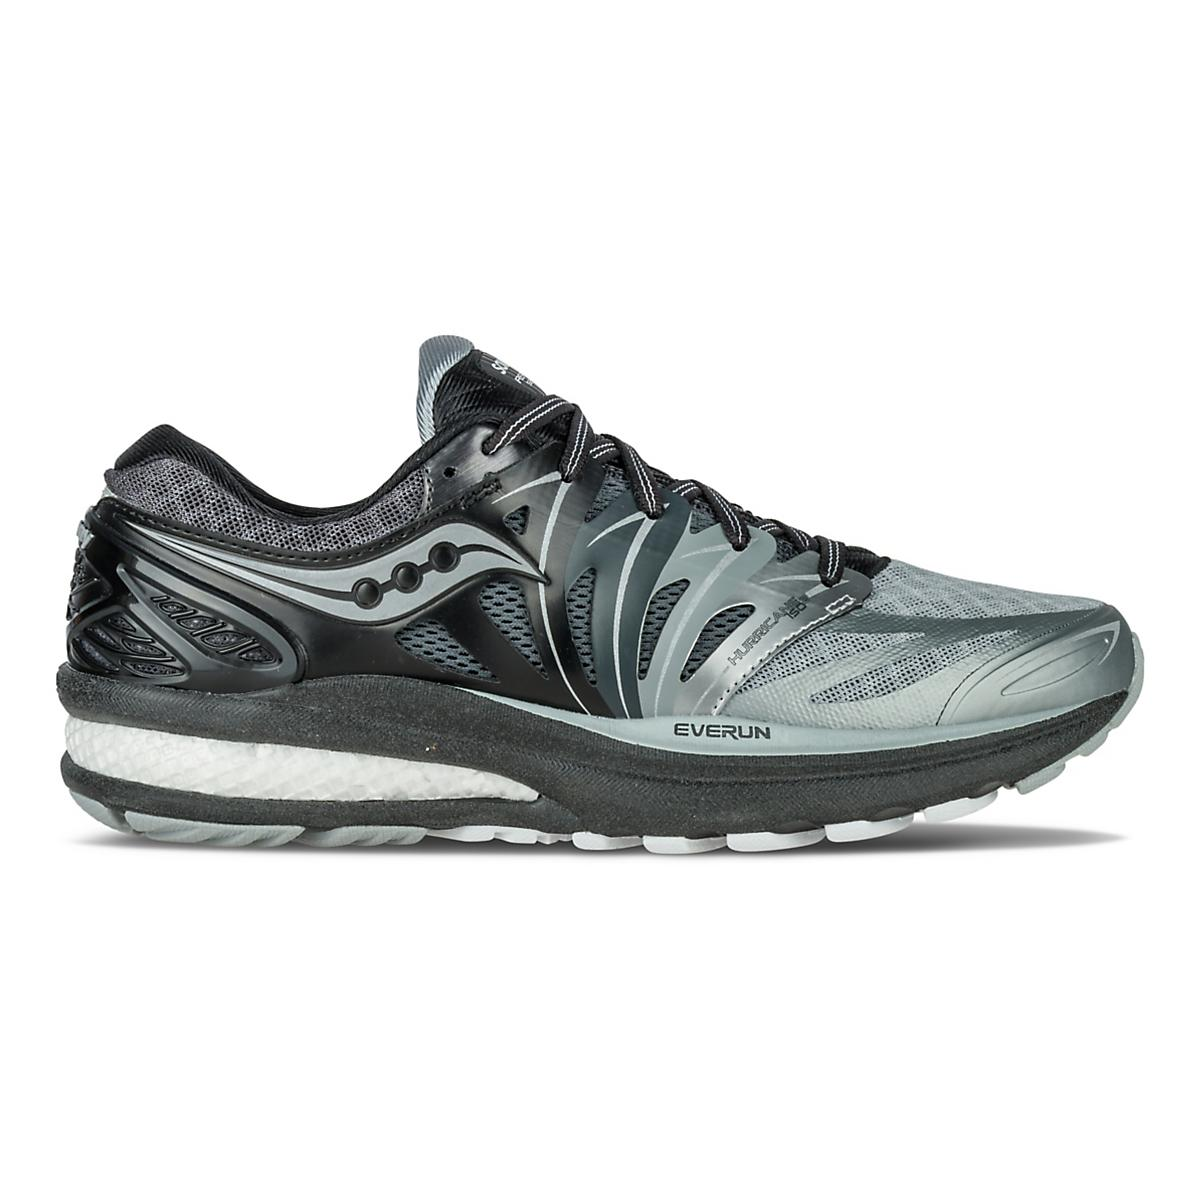 Saucony Tennis Shoes For Kids